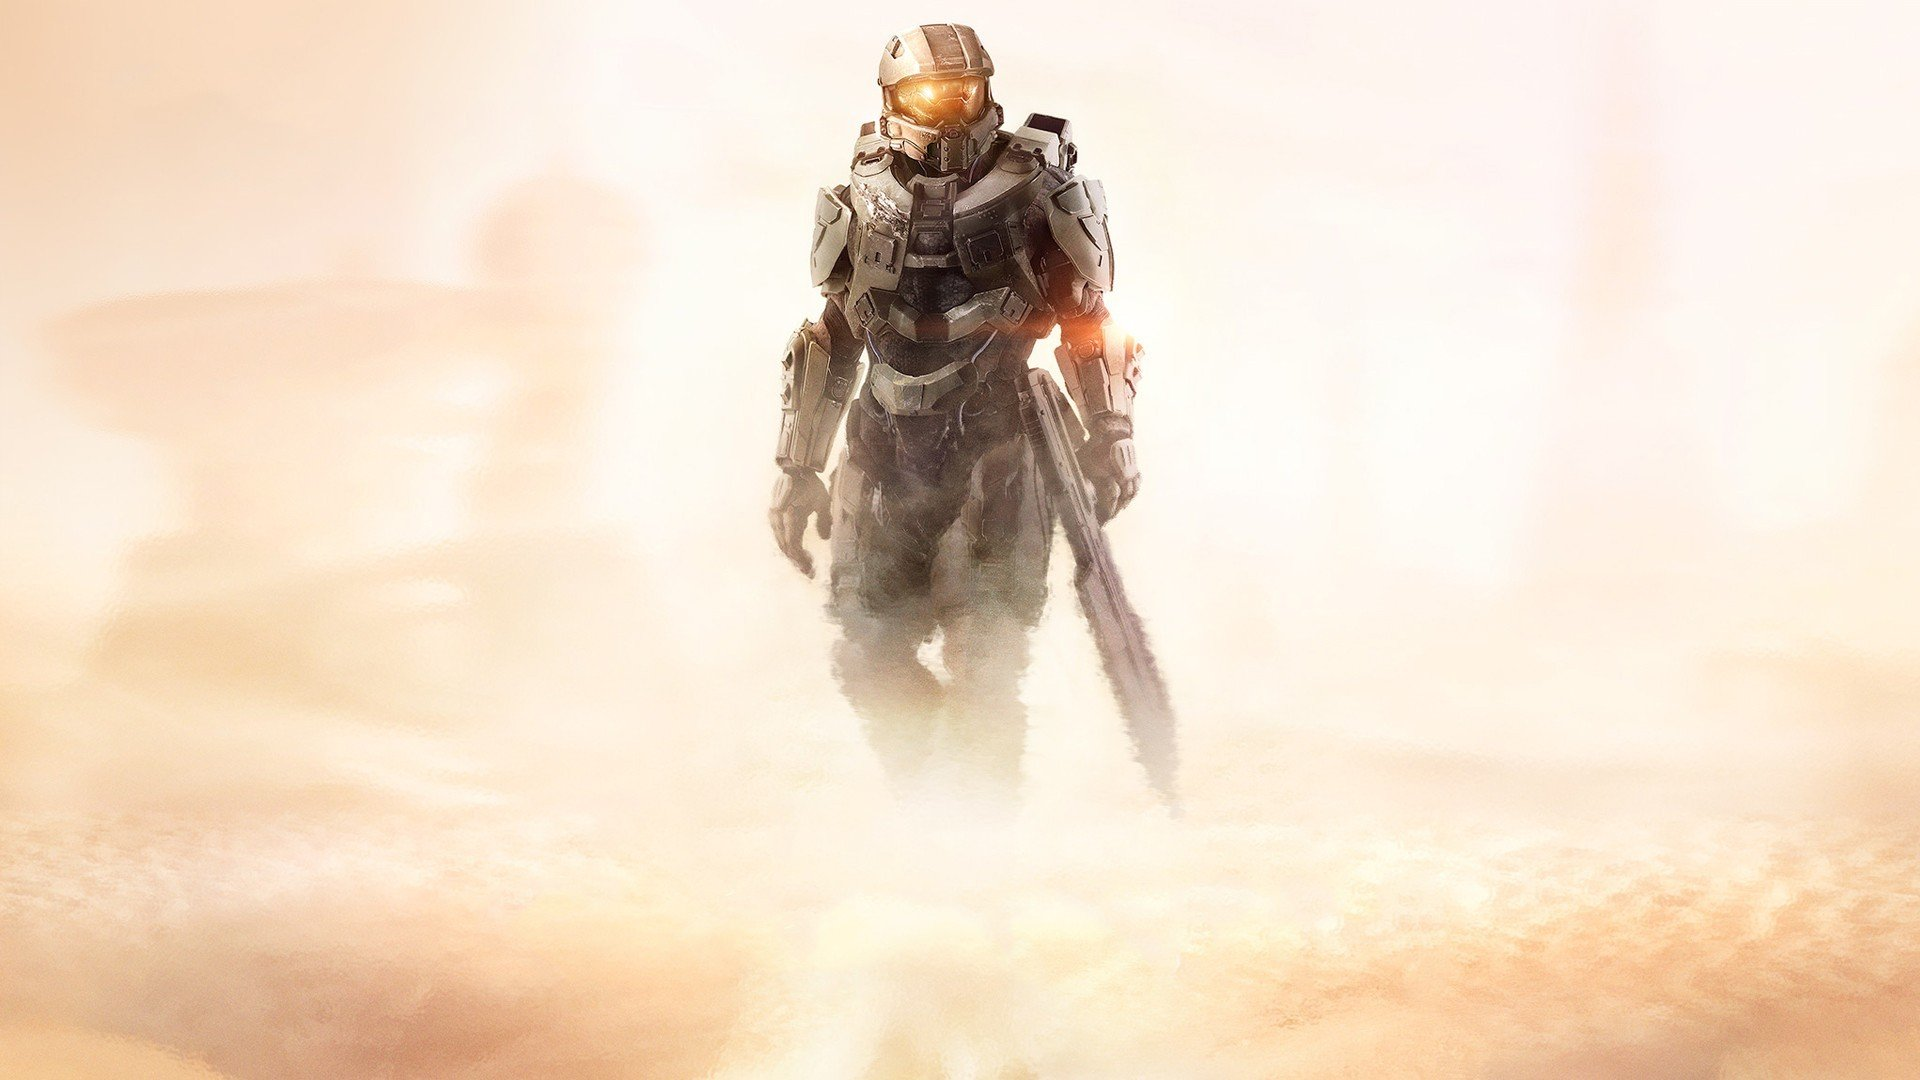 HALO 5 GUARDIANS shooter fps action fighting sci fi warrior series war 1920x1080